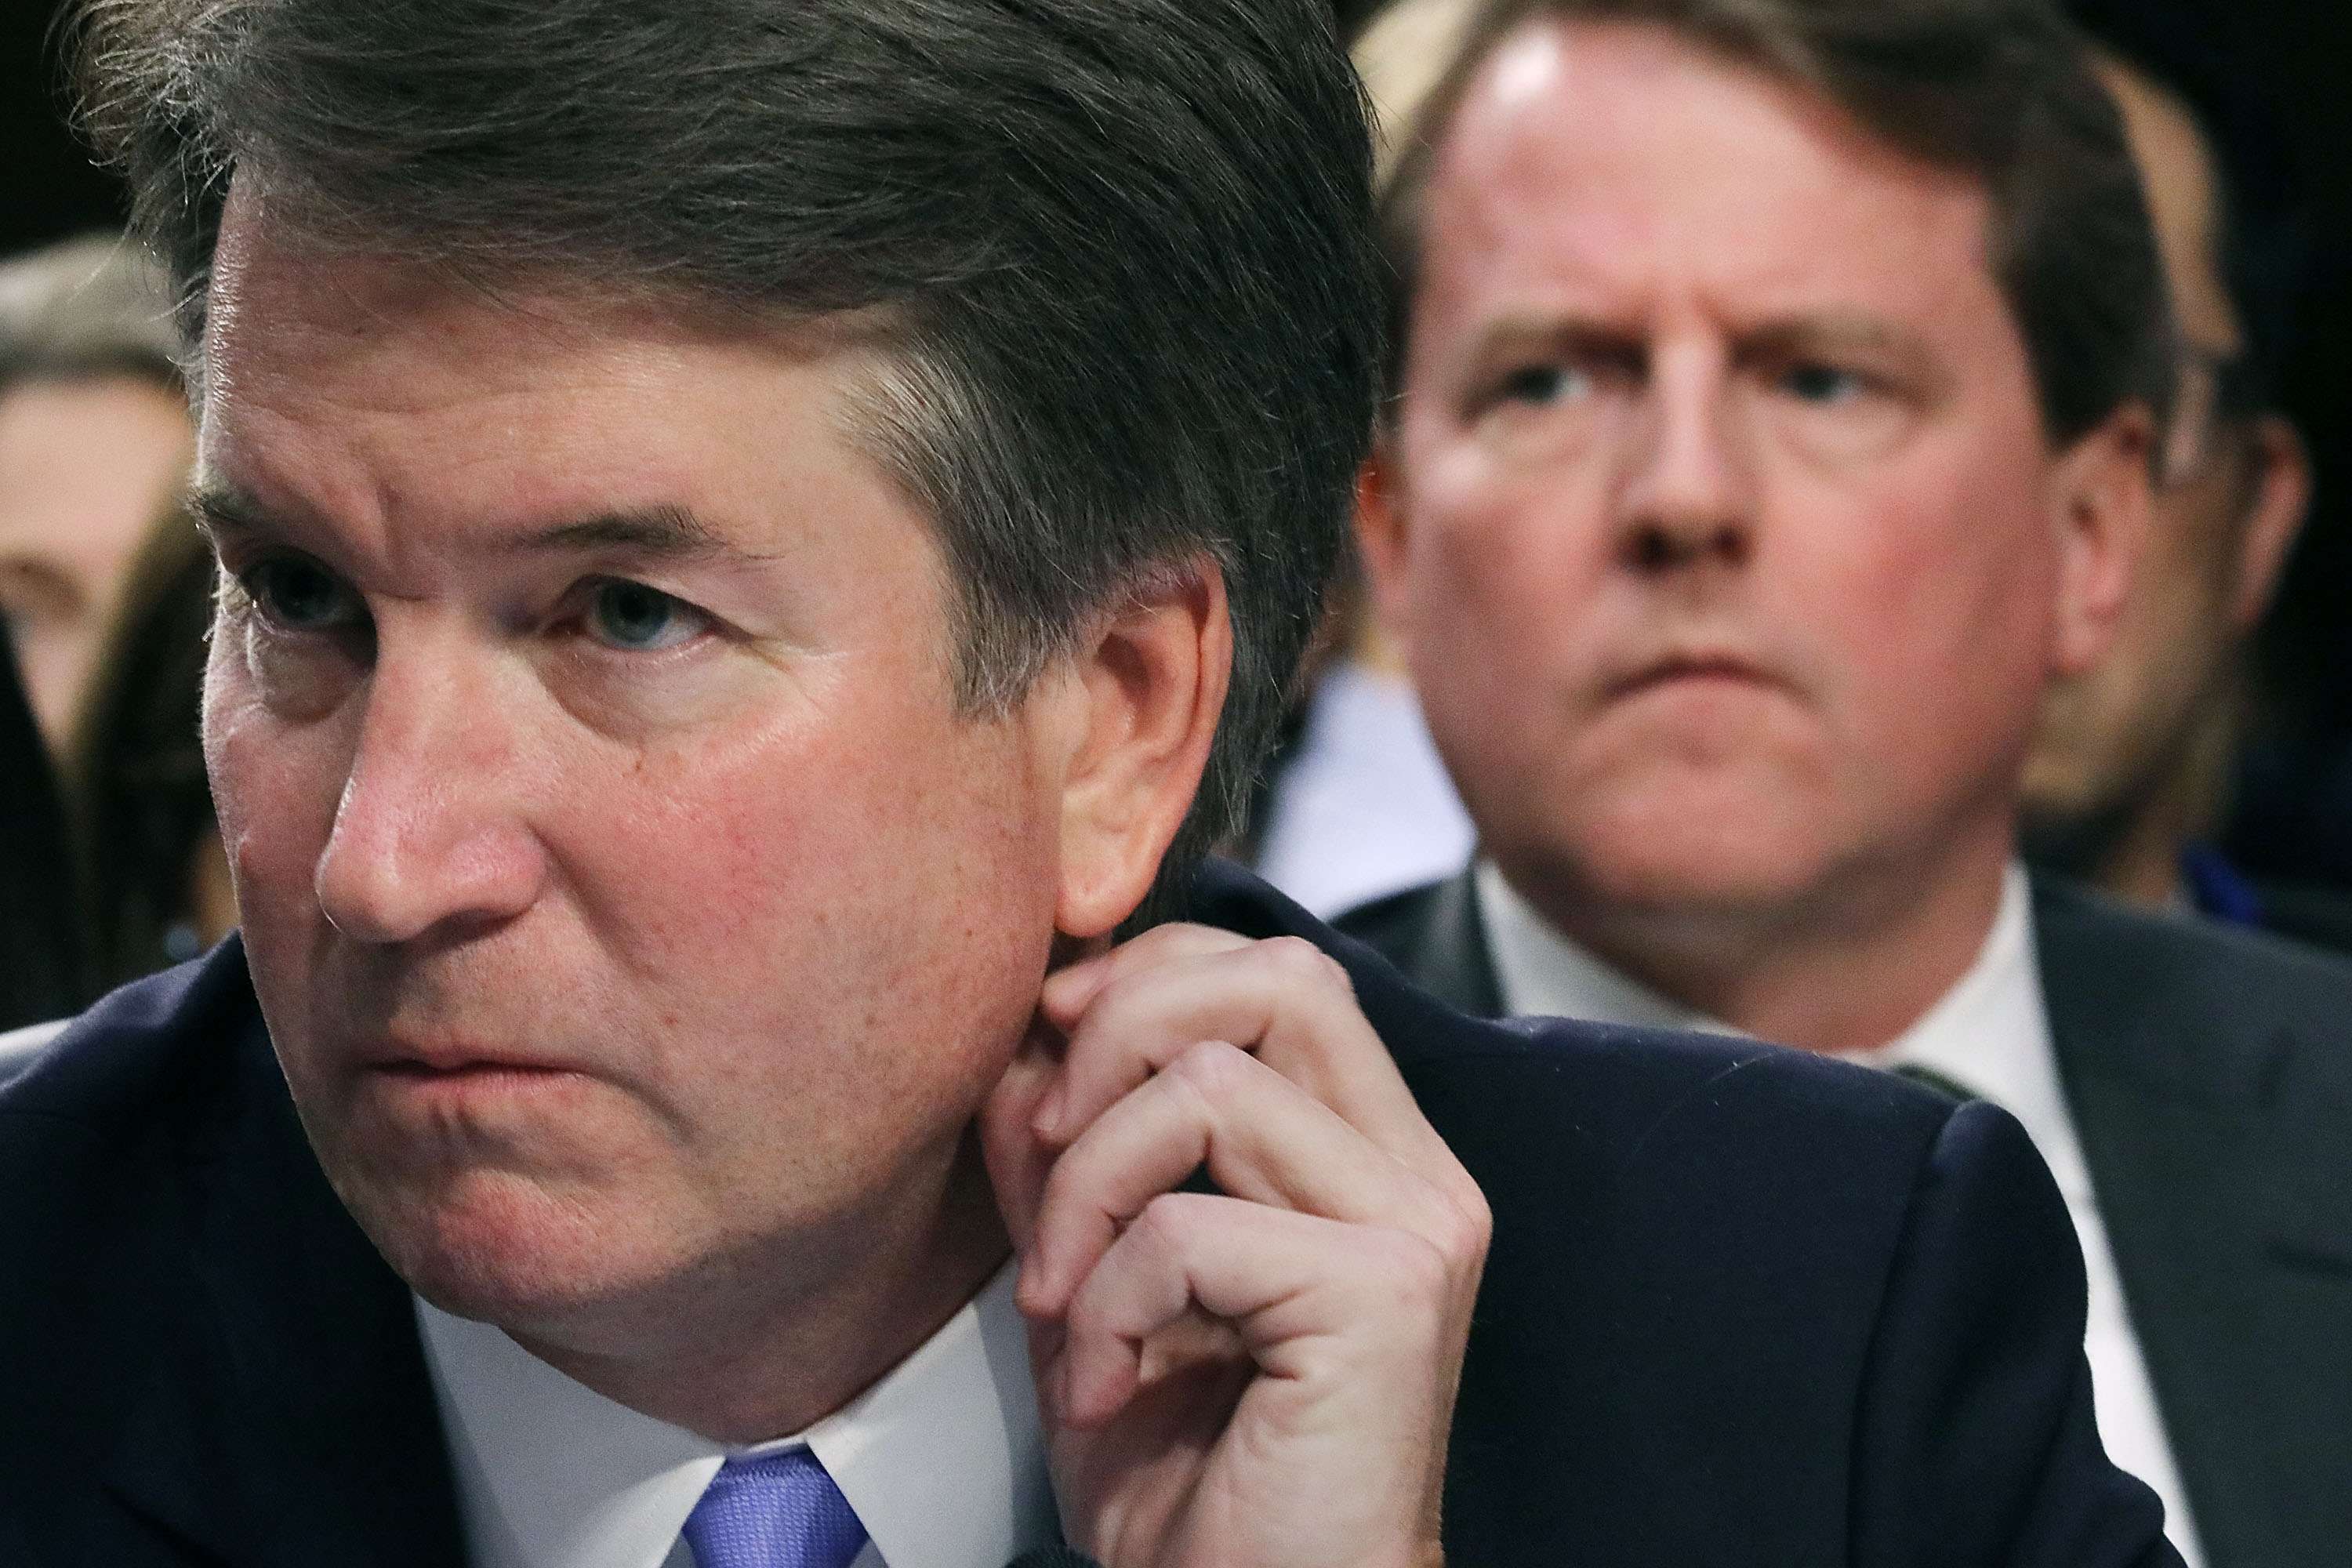 I've studied false rape claims. The accusation against Kavanaugh doesn't fit the profile.